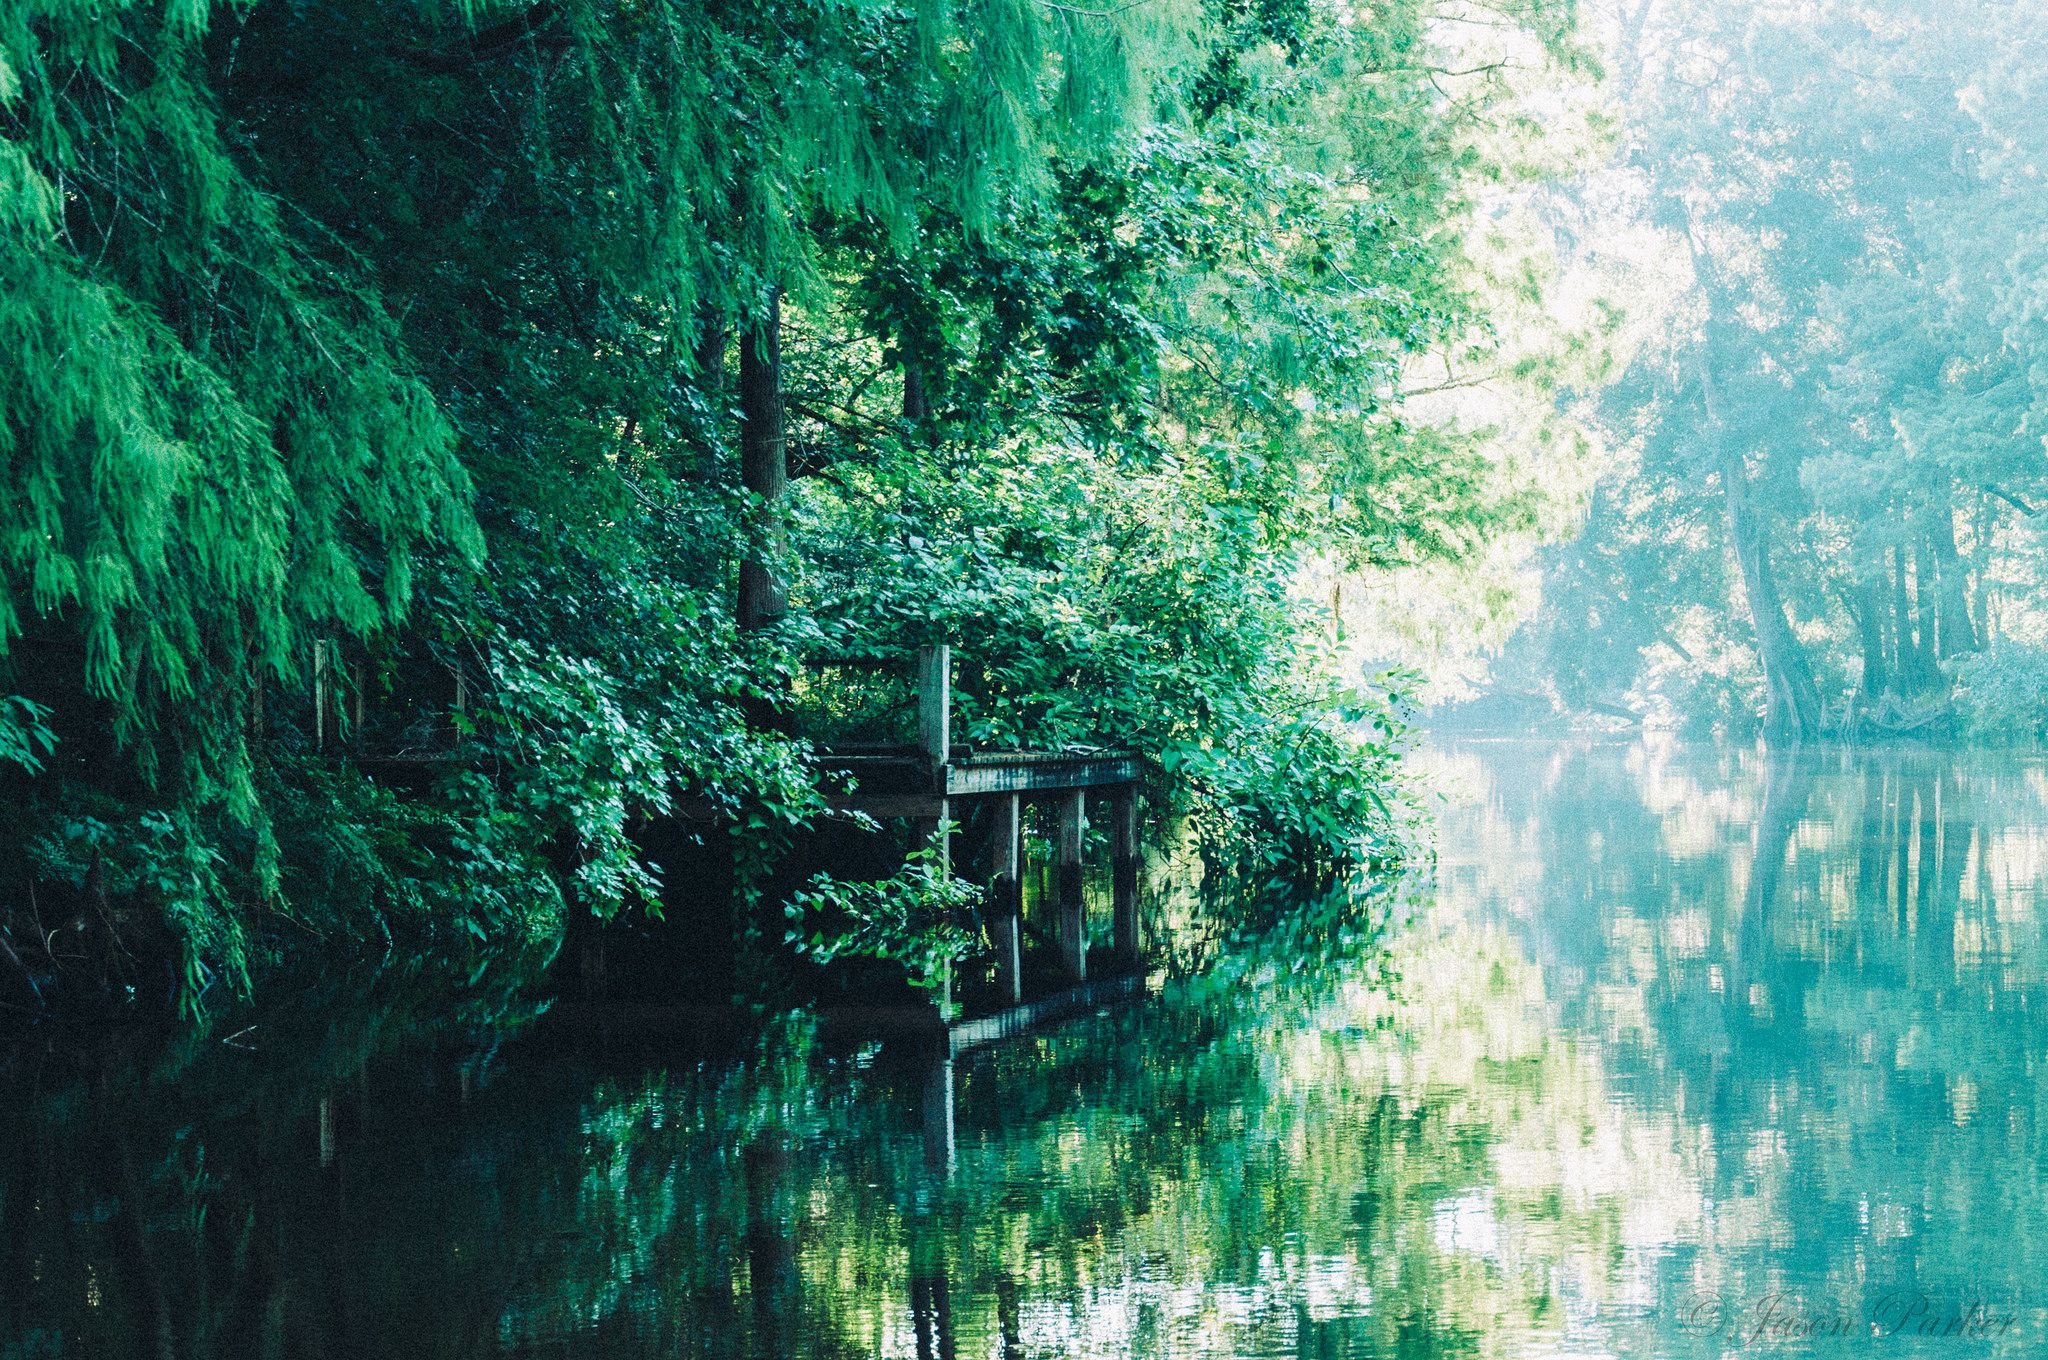 https://flic.kr/p/oEvSQX | Withlacoochie River | Withlacoochie River near Dunnellon, FL.  Taken from Captain Mike's Lazy River Tours.